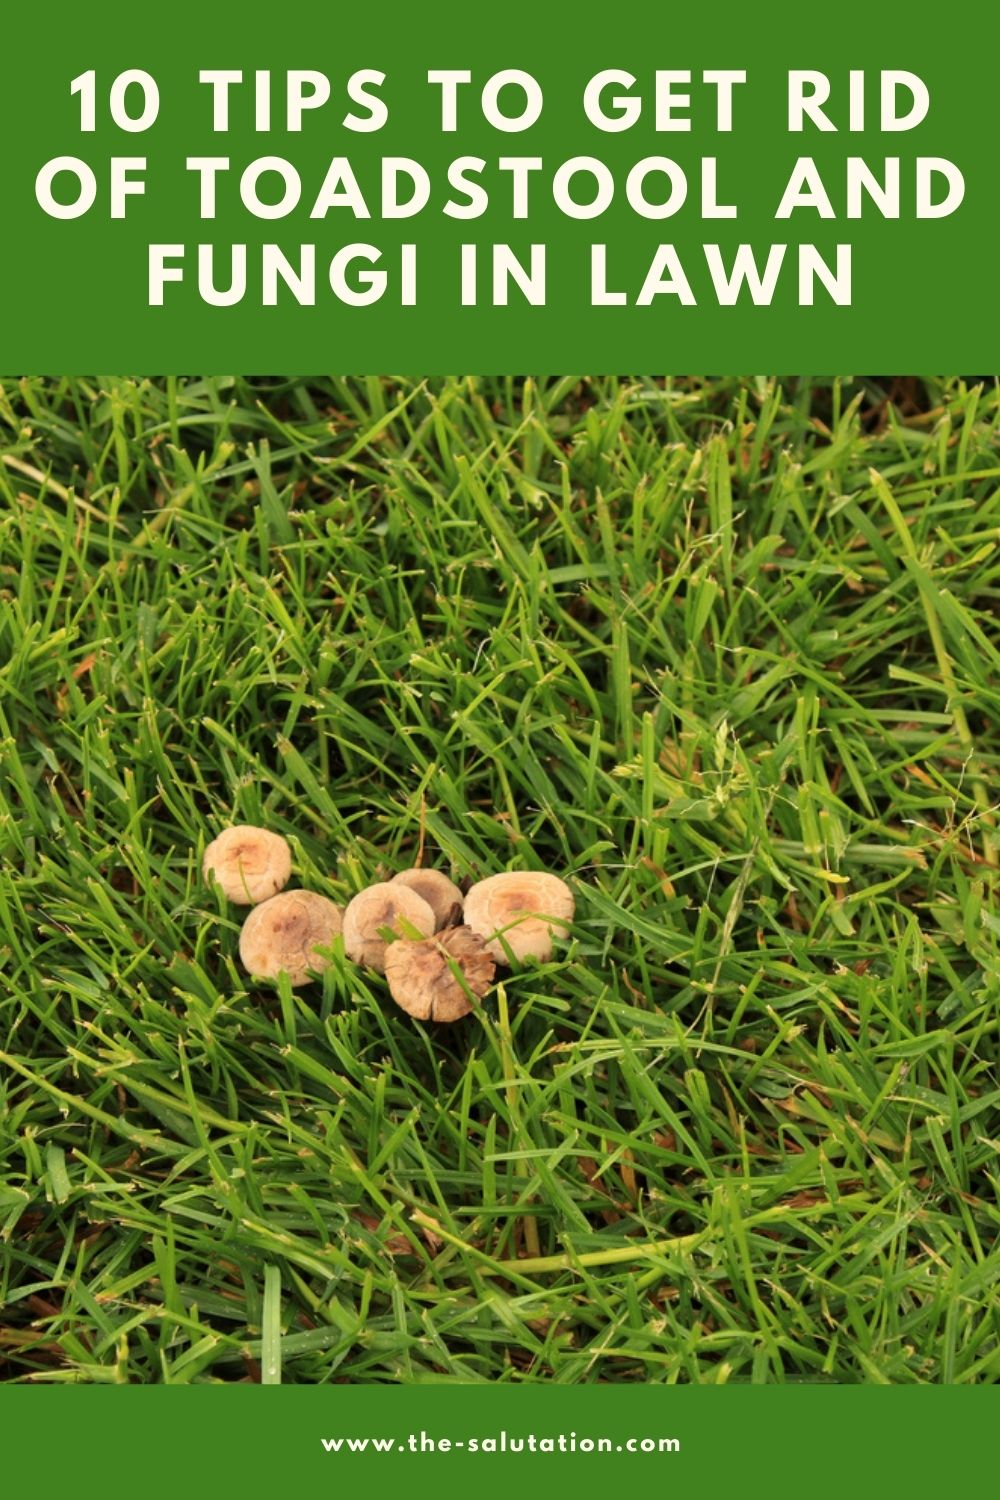 10 Tips To Get Rid of Toadstool and Fungi In Lawn 2